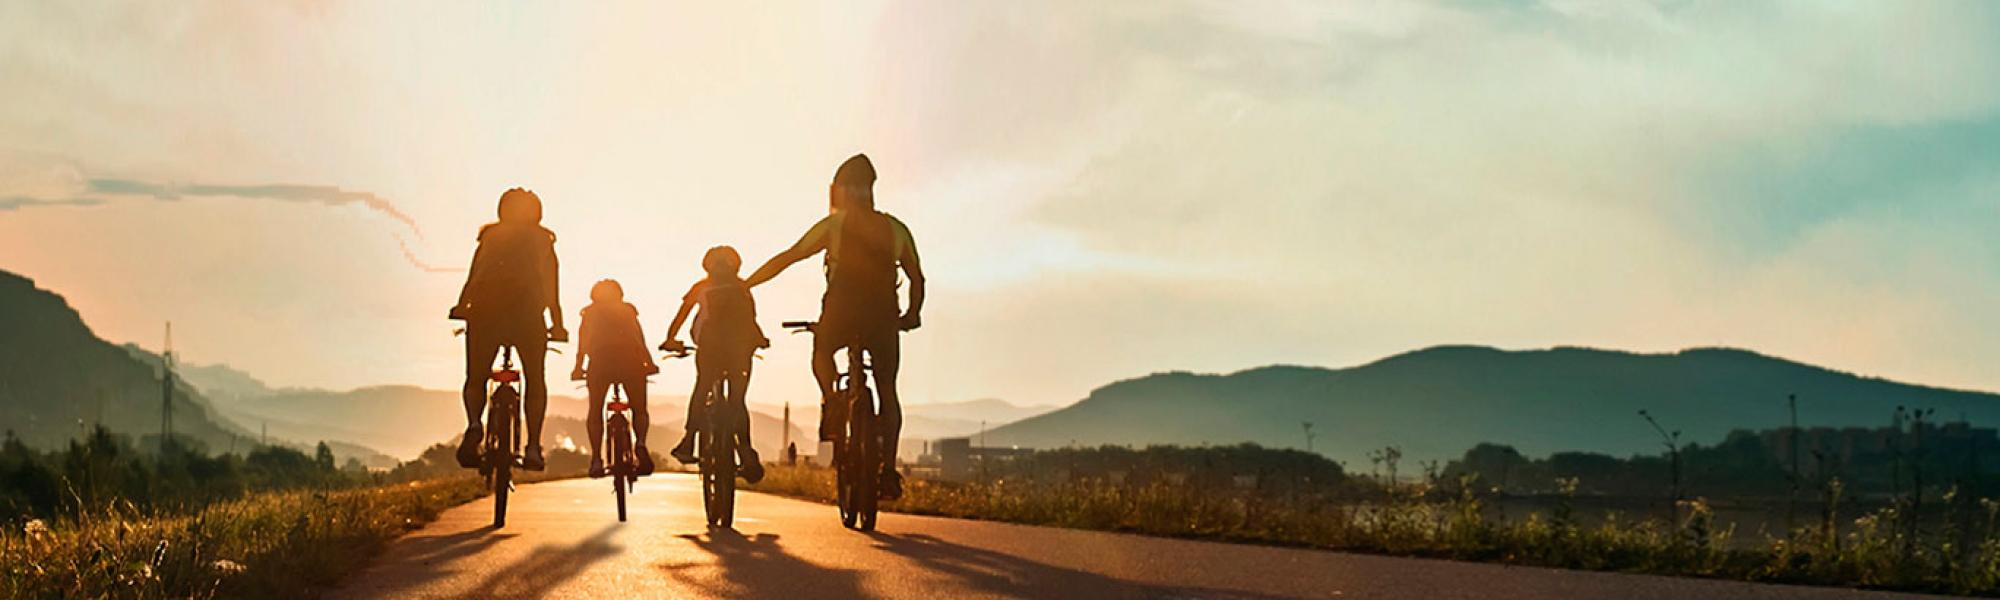 family riding bikes into sunset